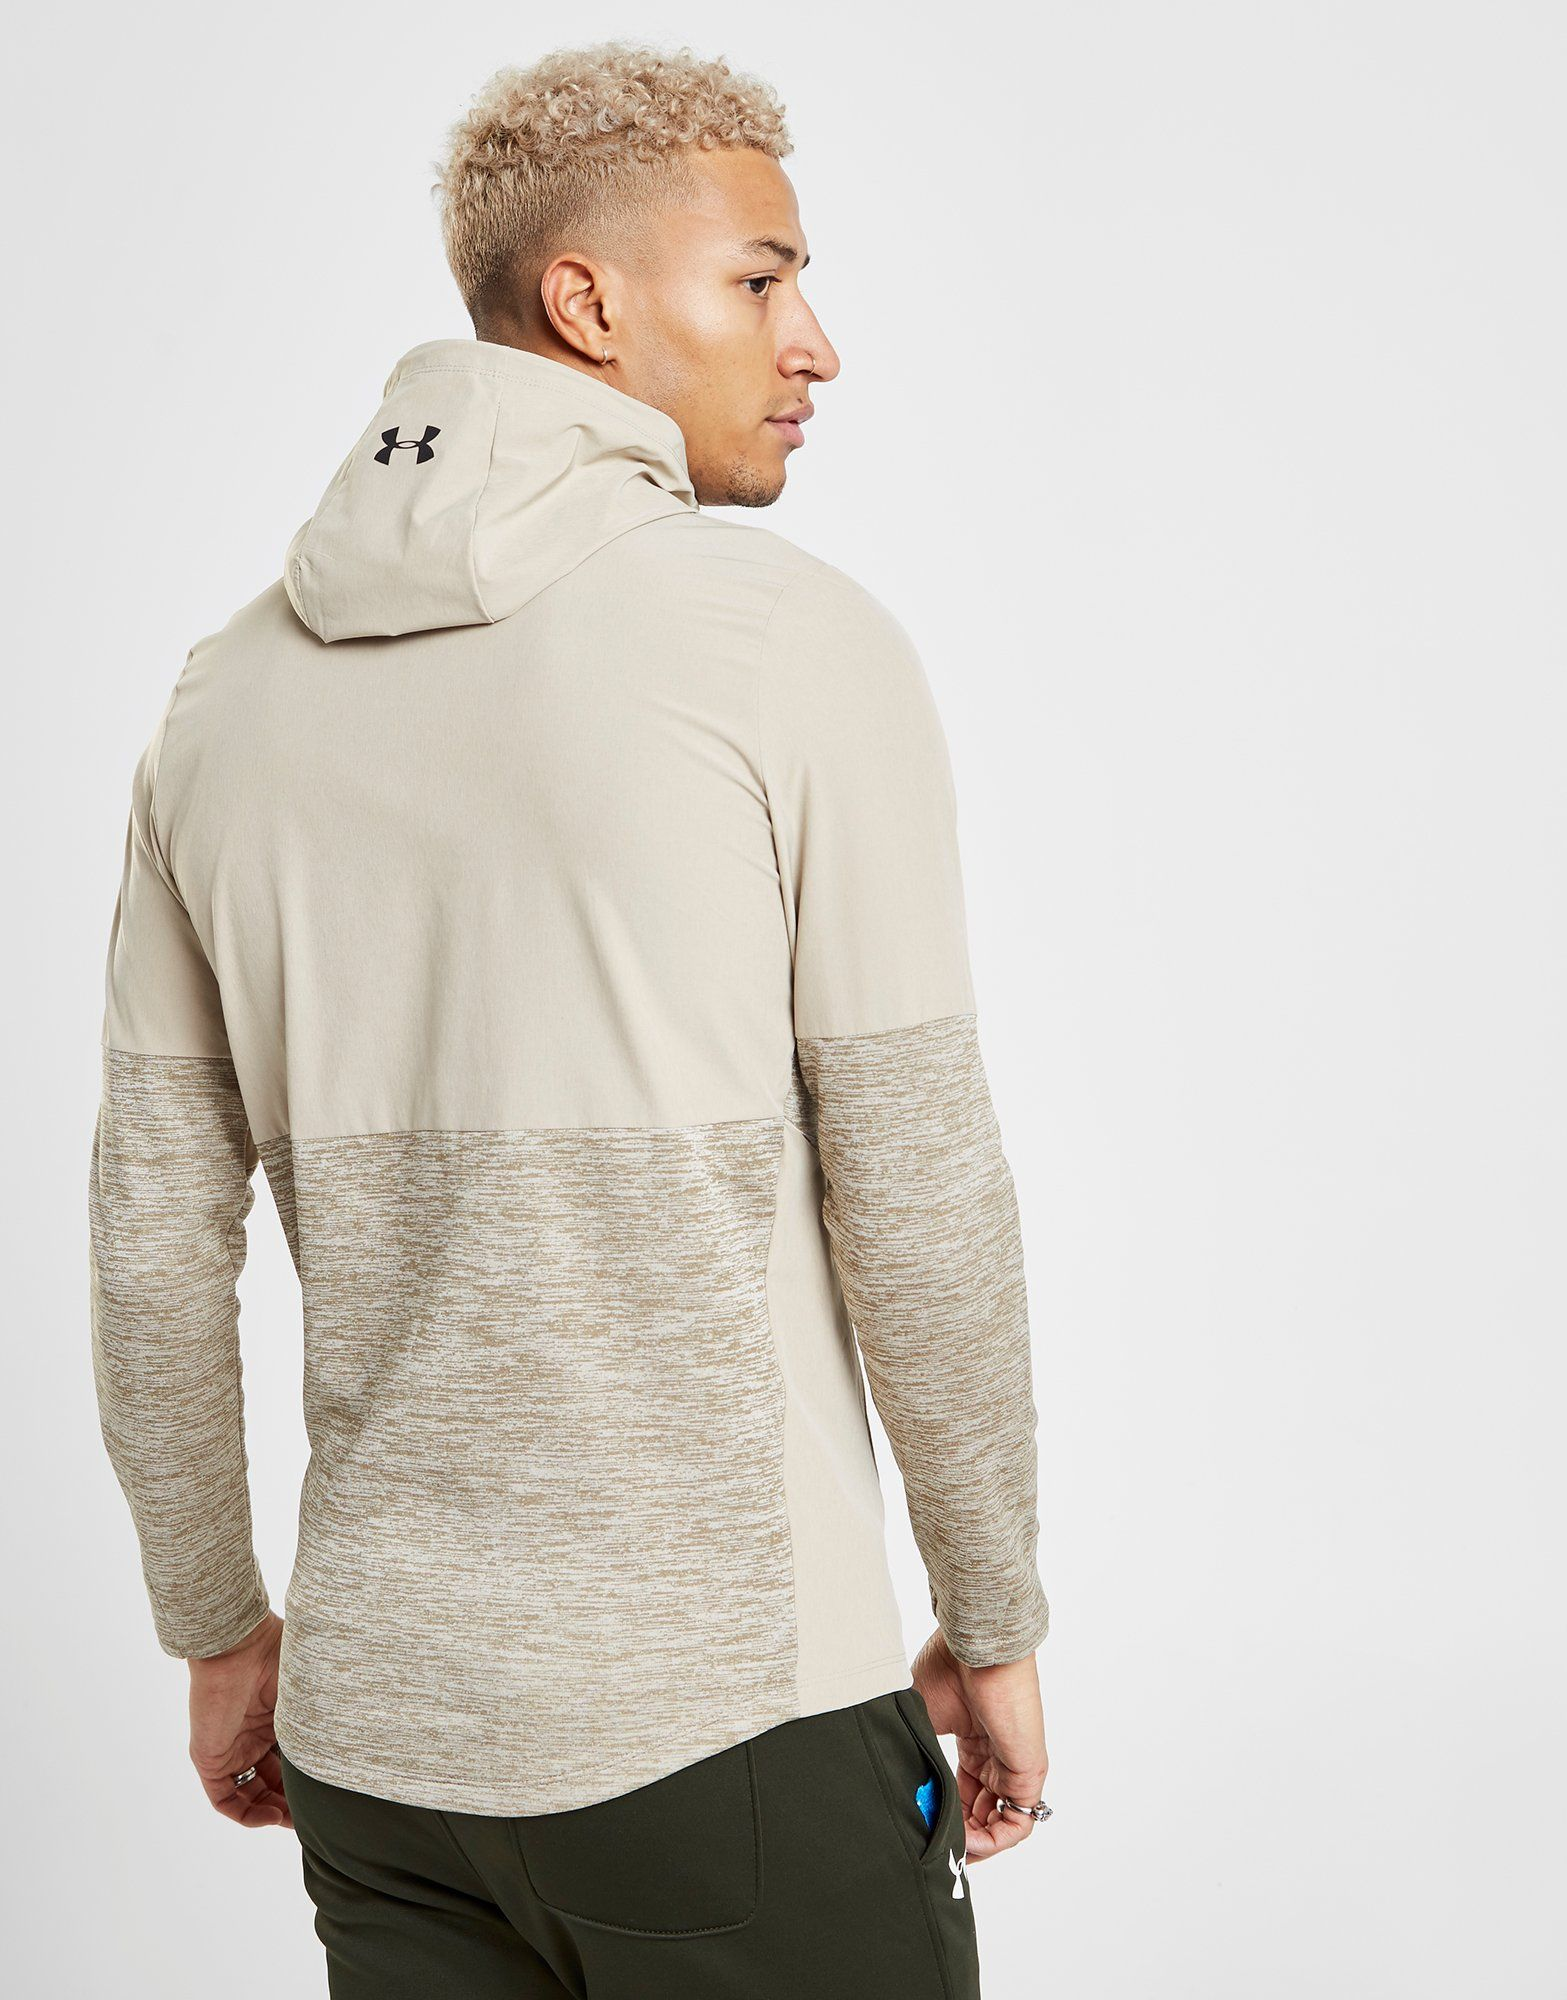 Under Armour Cyclone 1/2 Zip Track Top